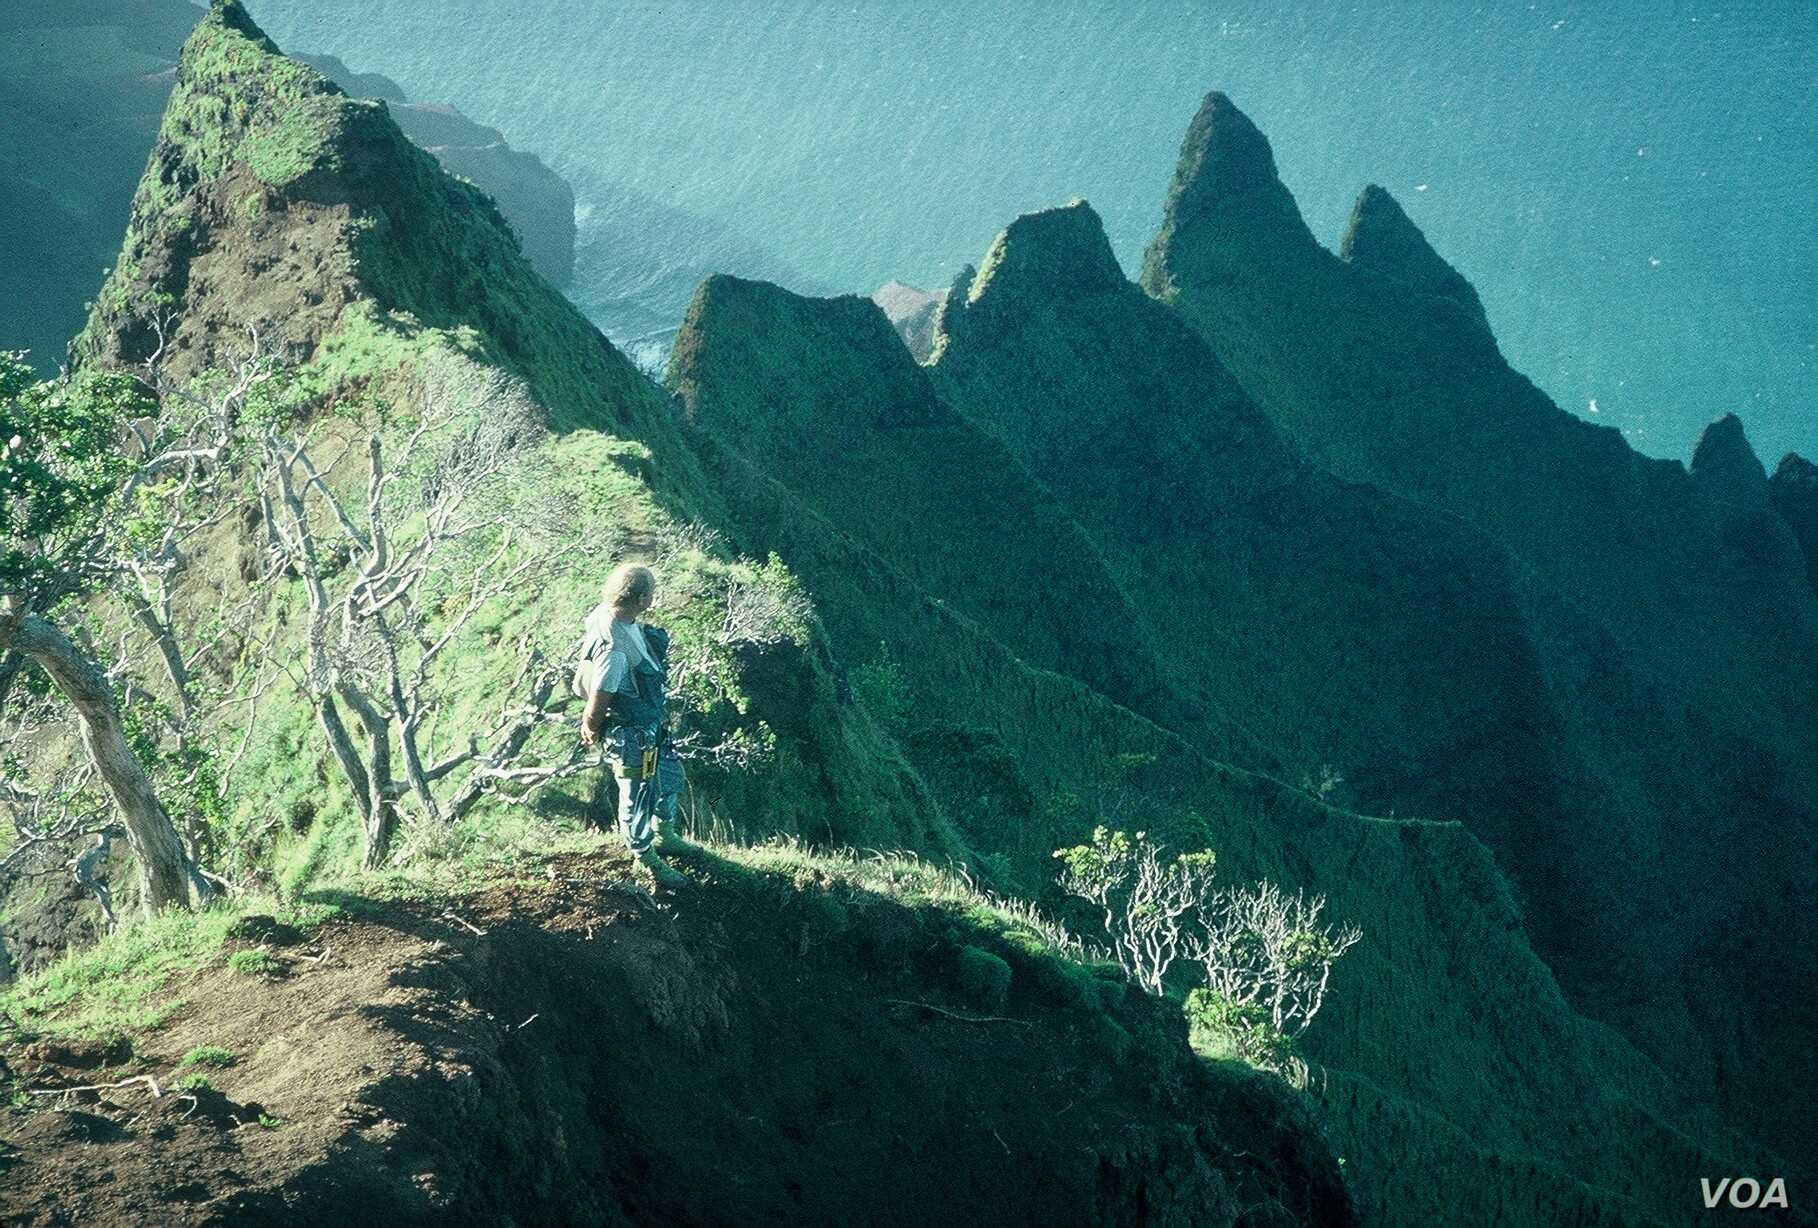 Steve Perlman, on the Kalalau cliffs on Kauai, Hawaii, pioneered rappelling down high cliffs to save endangered plant species. (Photo by Ken Wood)